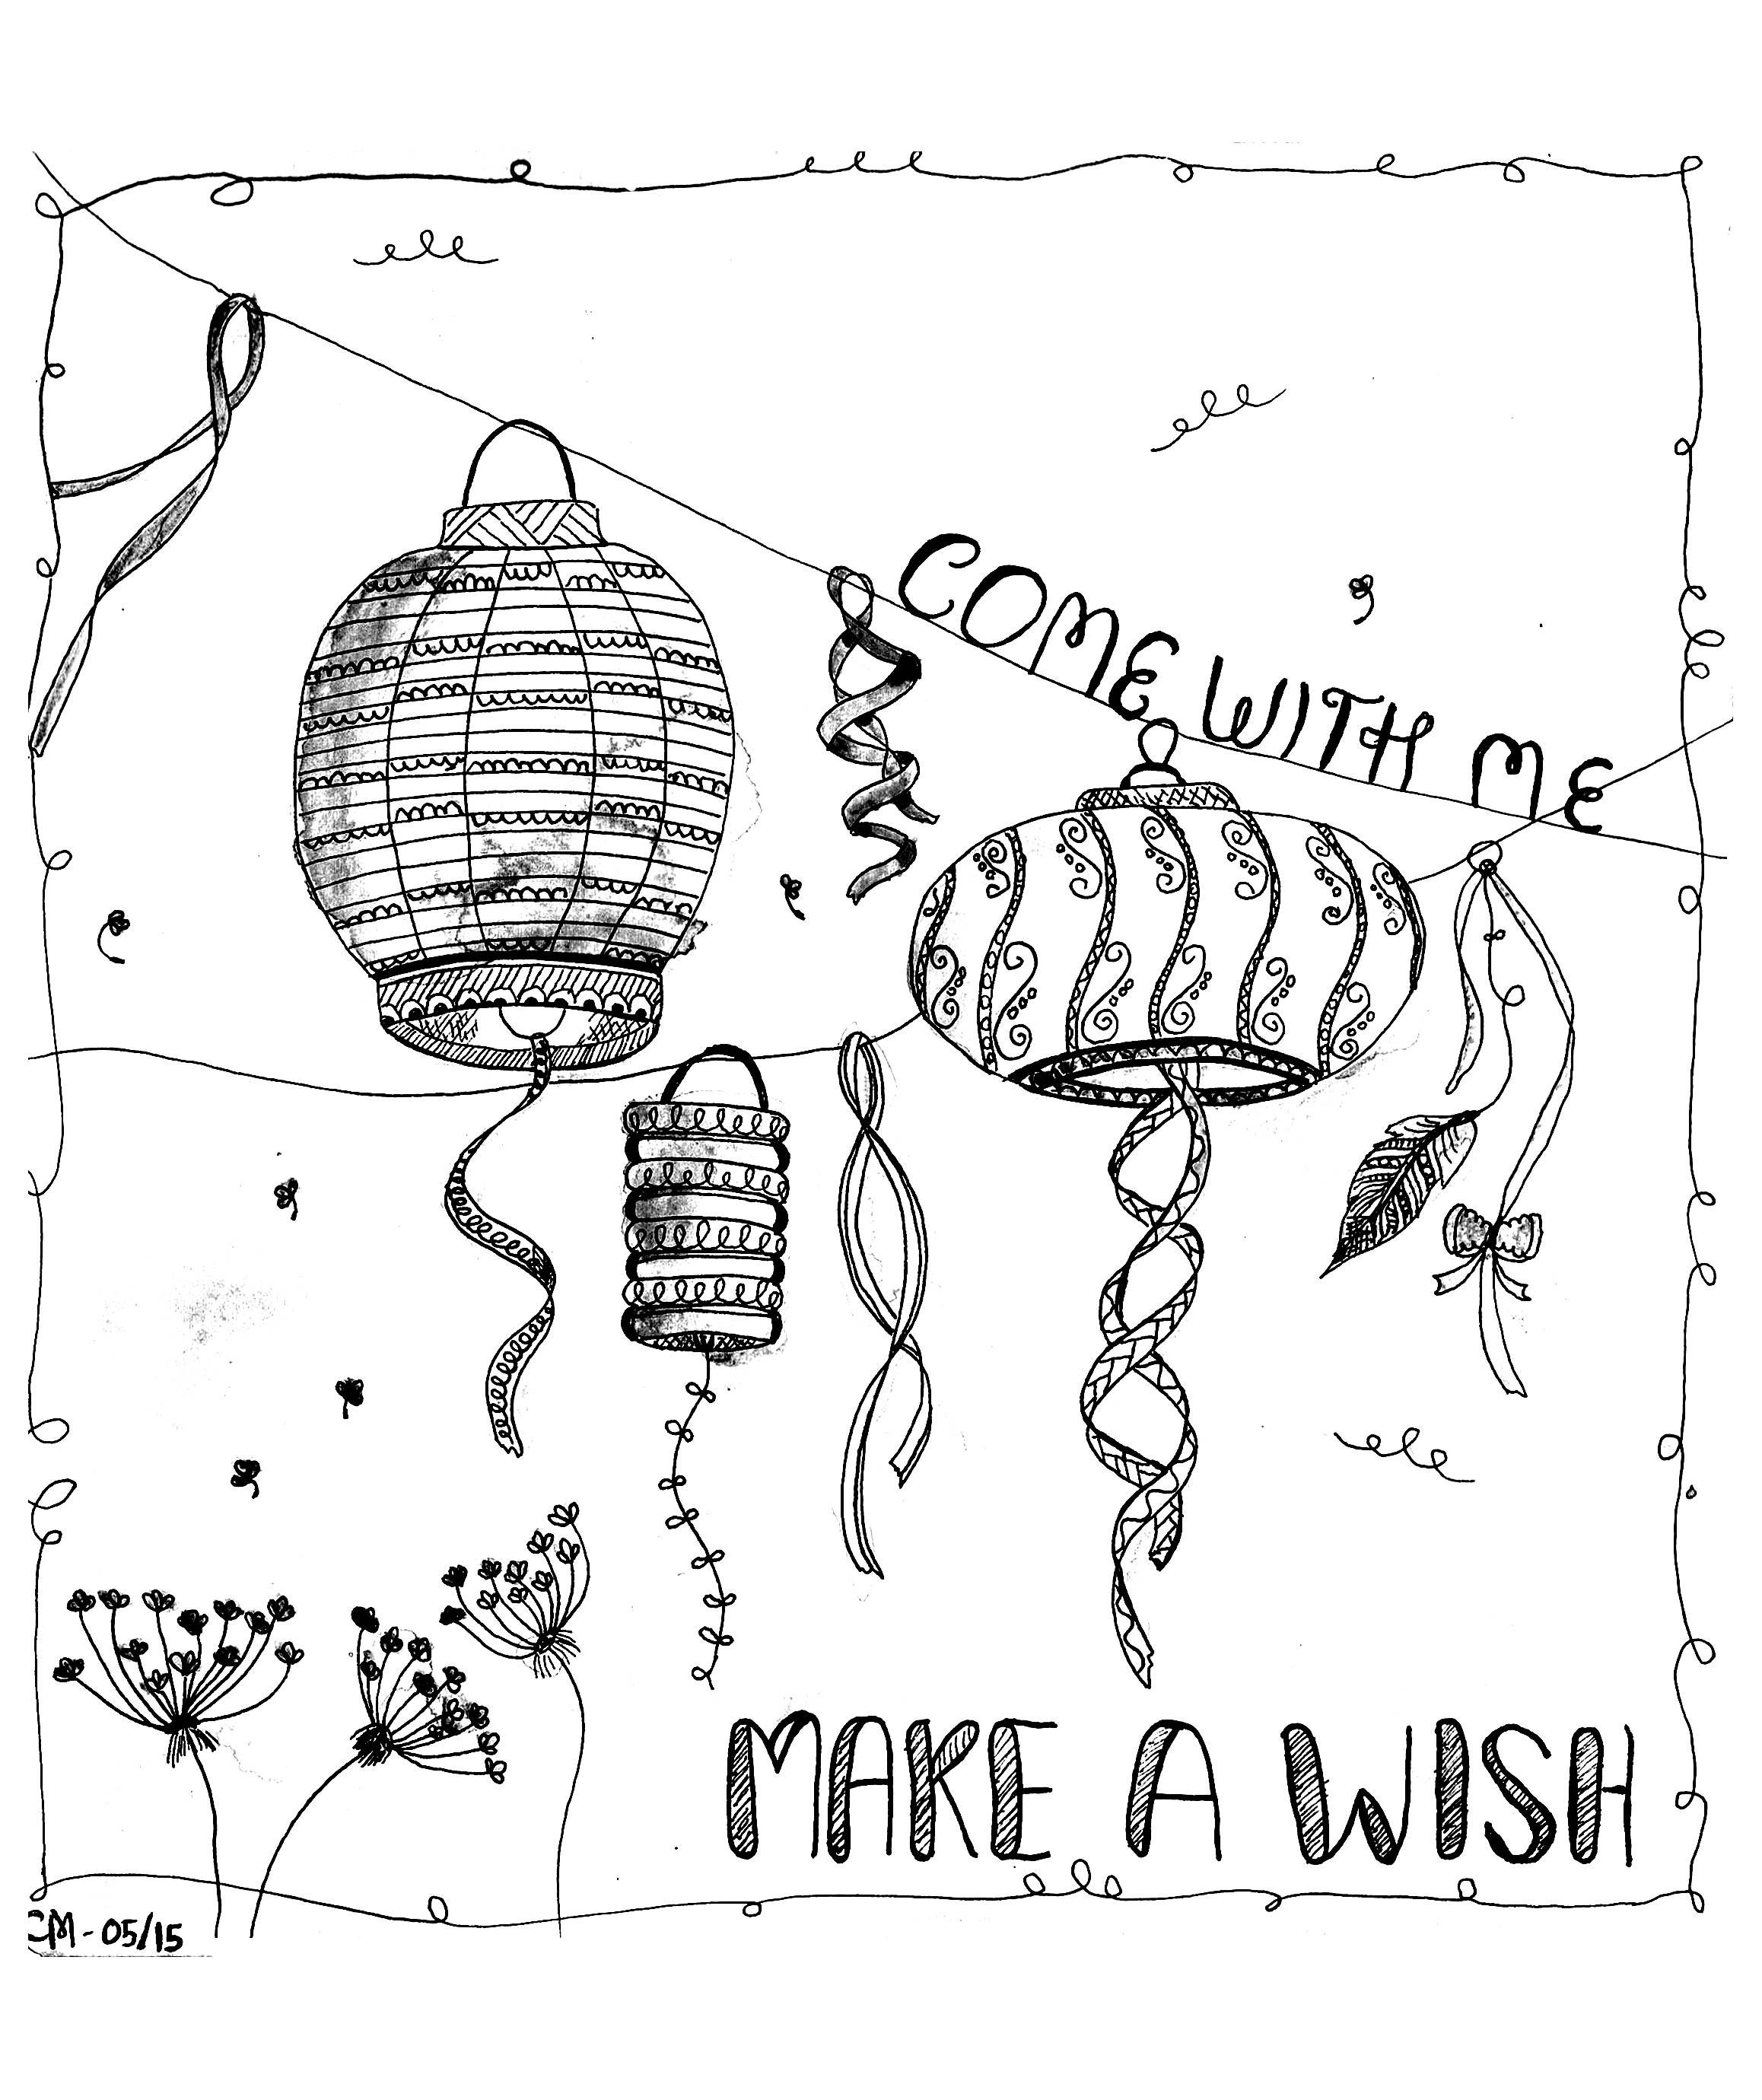 Free coloring page coloring-zentangle-by-cathym-5. 'Make a